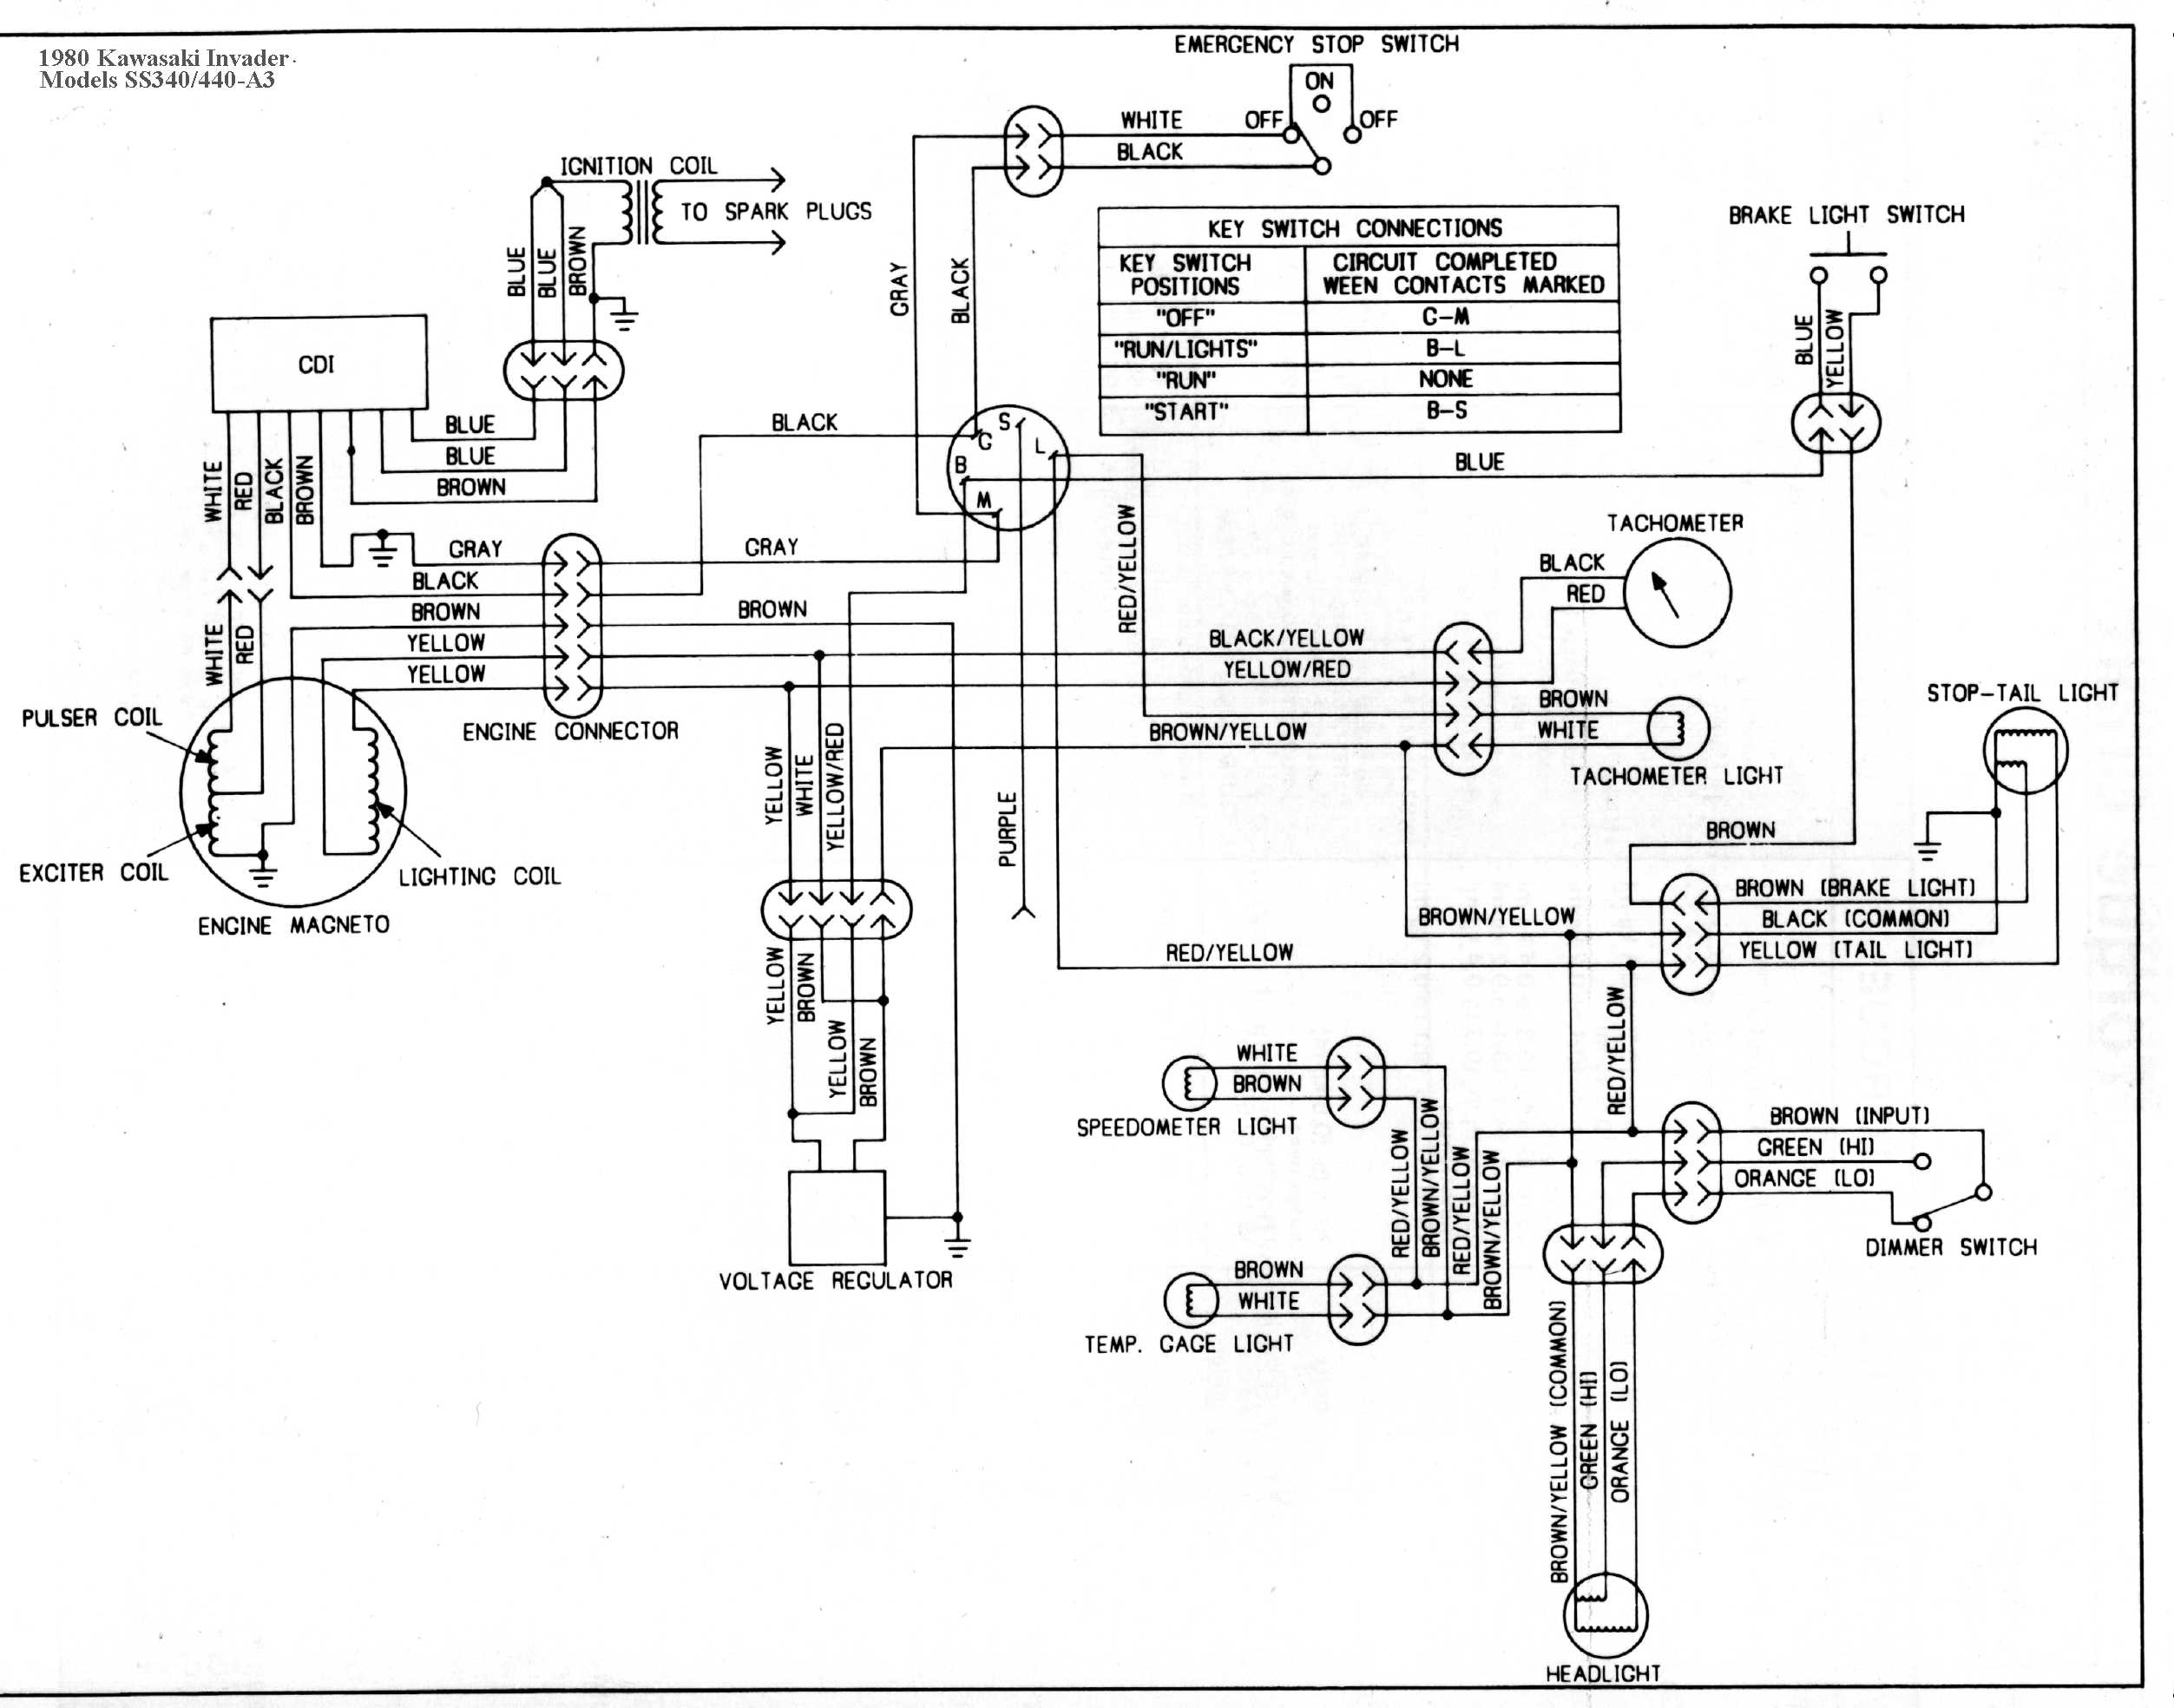 Tempstar Heat Pump Wiring Diagram Style Ph5542aka | Wiring Diagram on westinghouse heat pump schematic, nordyne heat pump schematic, kenmore heat pump schematic, payne heat pump schematic, miller heat pump schematic, coleman heat pump schematic, basic heat pump schematic, carrier heat pump schematic, lennox heat pump schematic, york heat pump schematic, american standard heat pump schematic, goettl heat pump schematic, goodman heat pump schematic, heat pump thermostat wiring schematic, trane heat pump schematic, mcquay heat pump schematic,